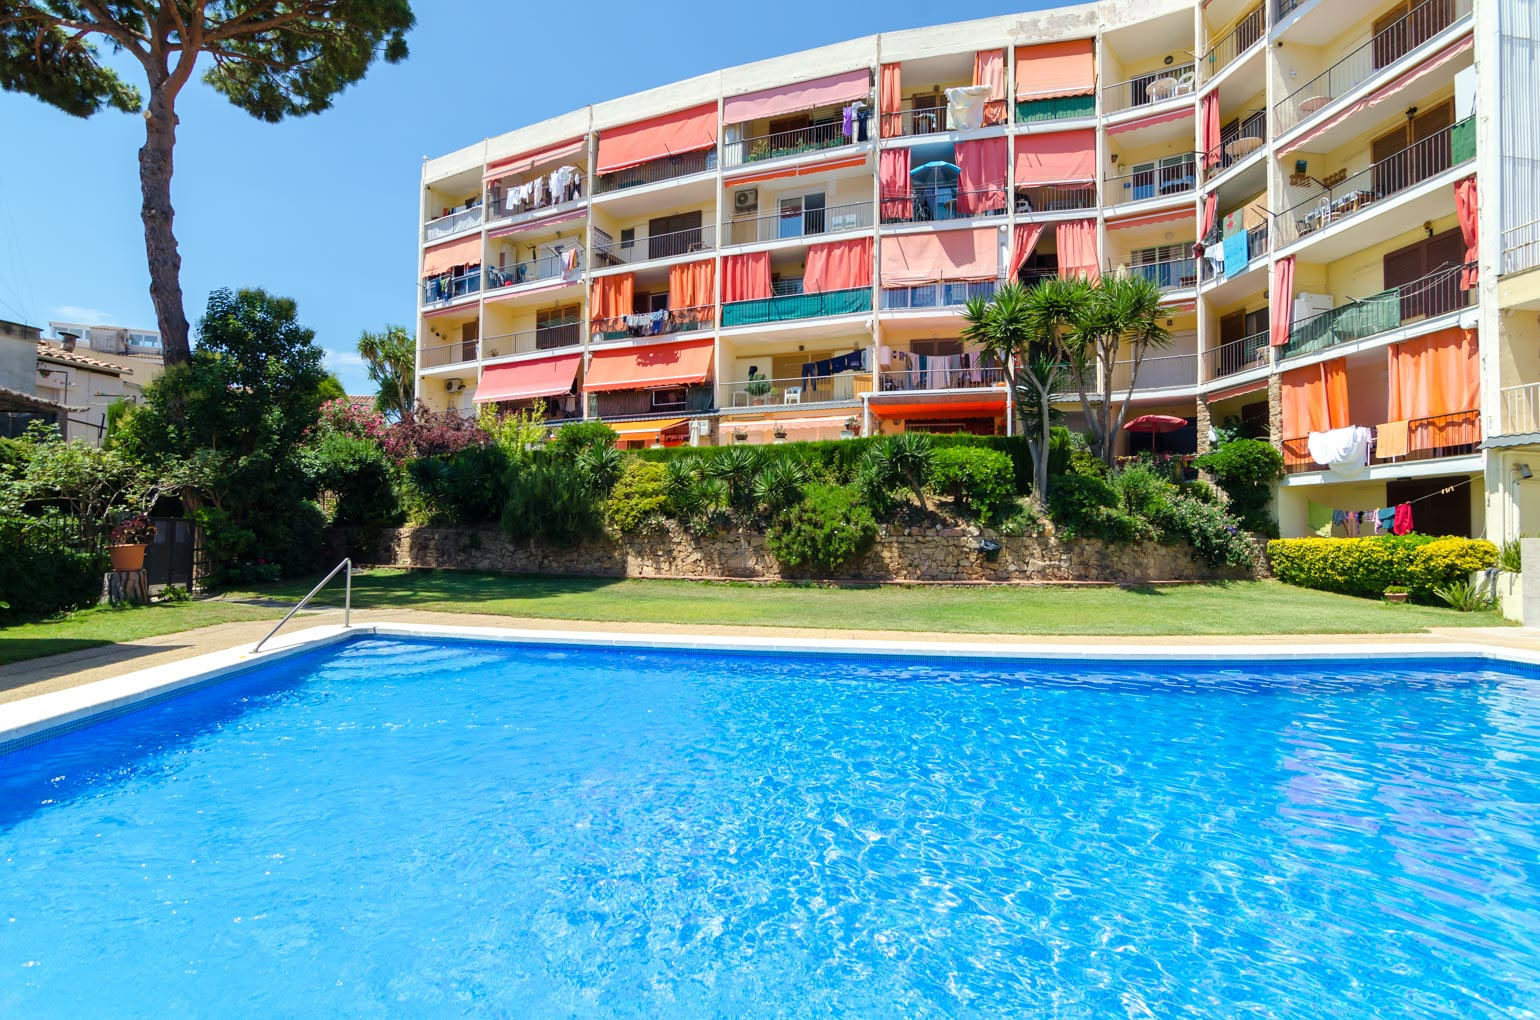 Villa Apartment Rielsa,Lloret de Mar,Costa Brava #1